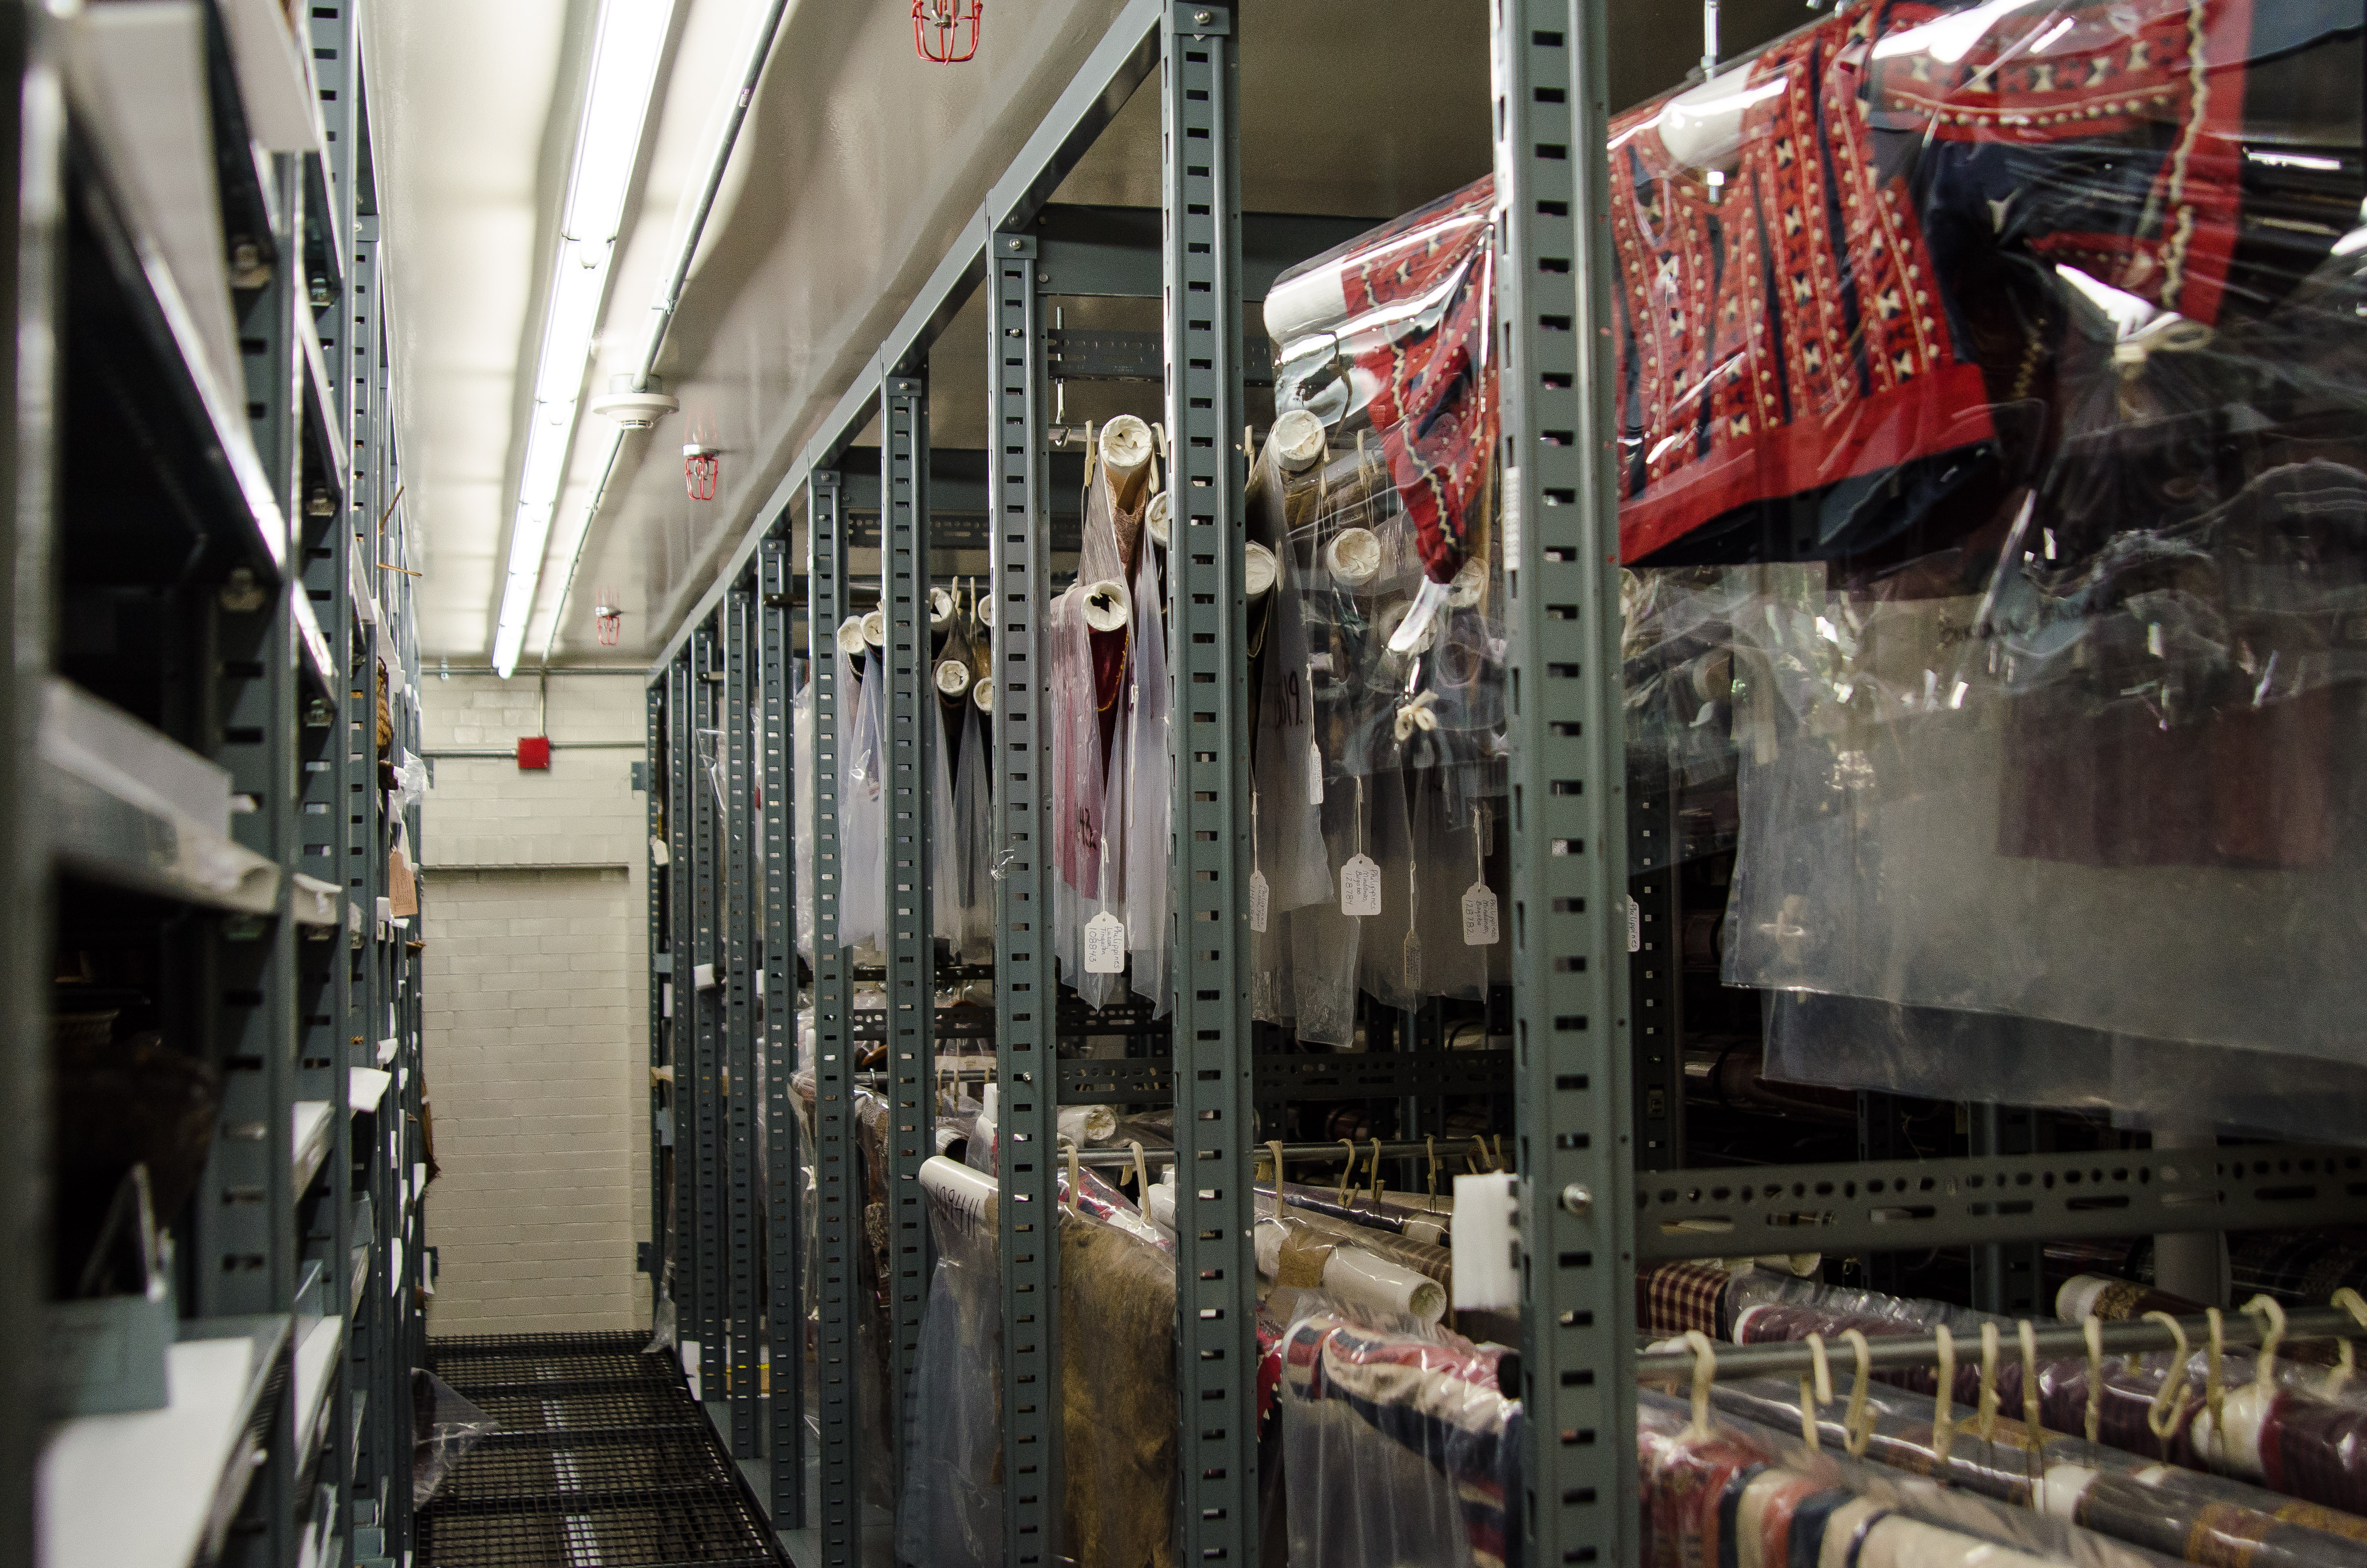 Image depicting rolled textiles at their storage designations within CAS Mezzanine storeroom. Selected for use on the homepage of the Philippine Heritage Collections interactive web portal. (c) Field Museum of Natural History - CC BY-NC